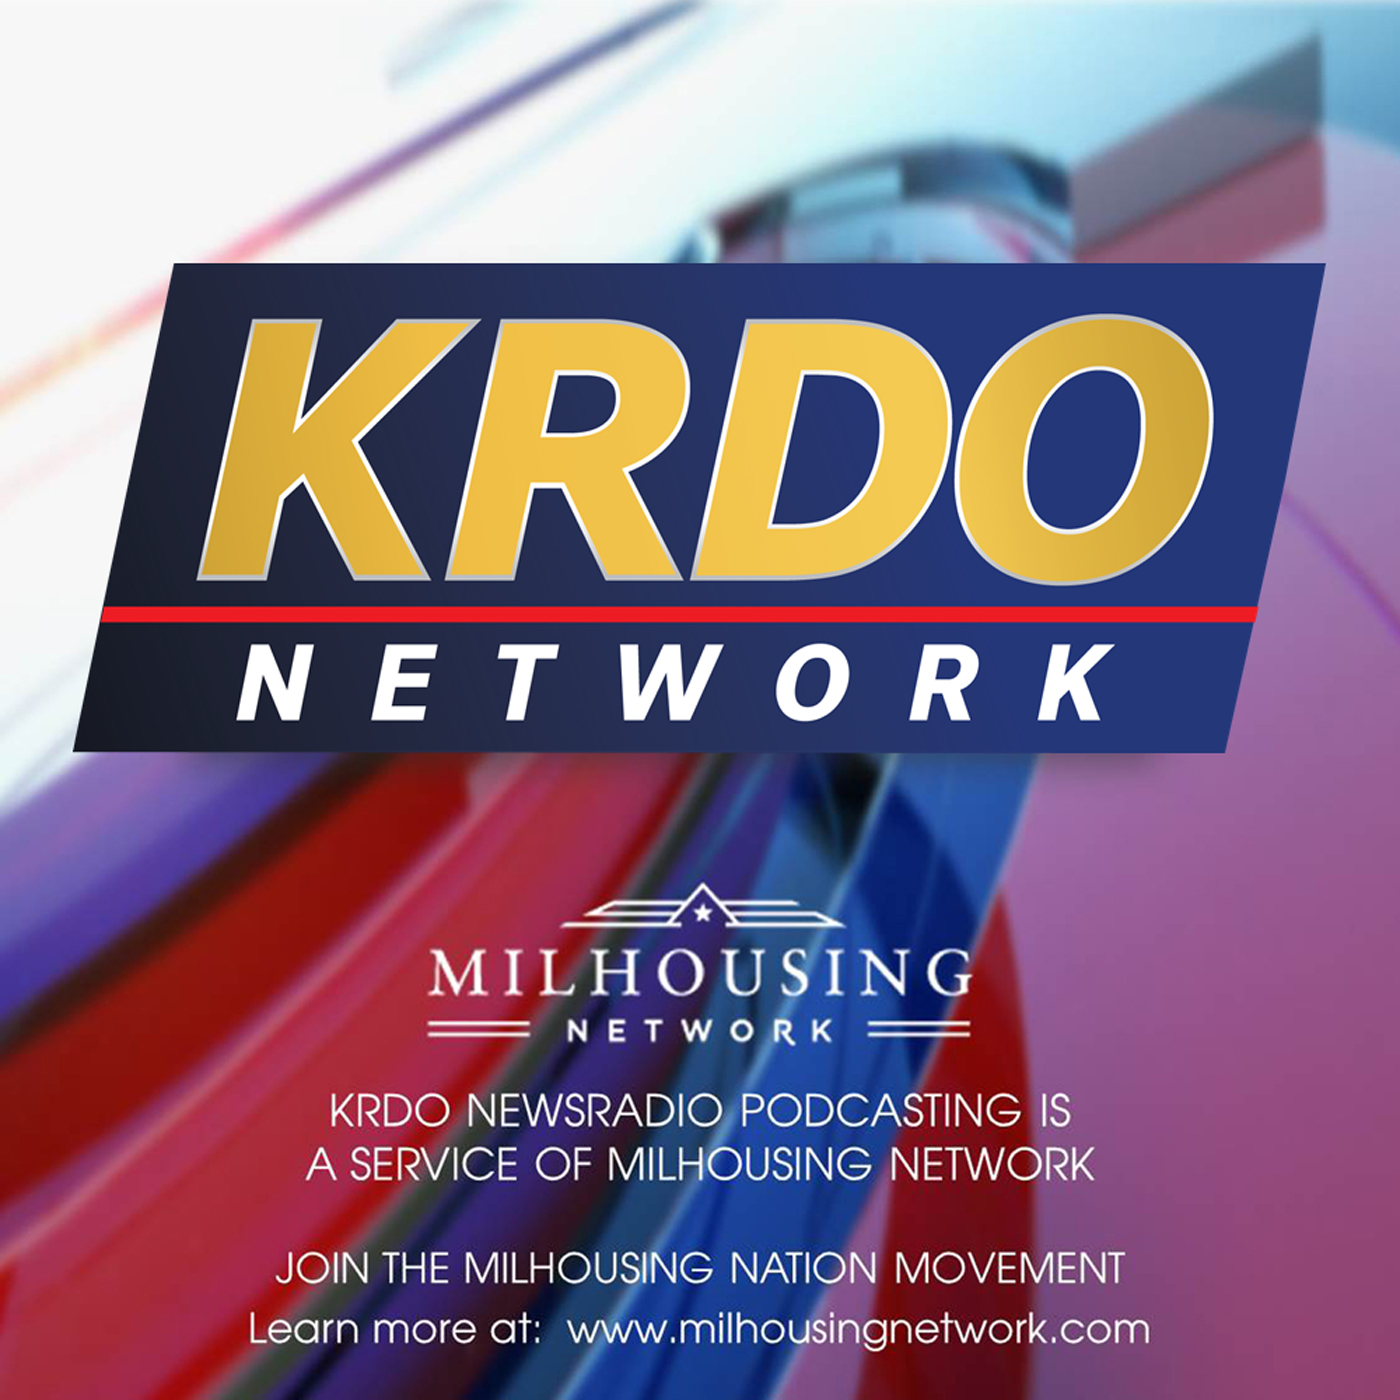 KRDO Noon News with Mike Lewis - Ronald McDonald House - April 17, 2019